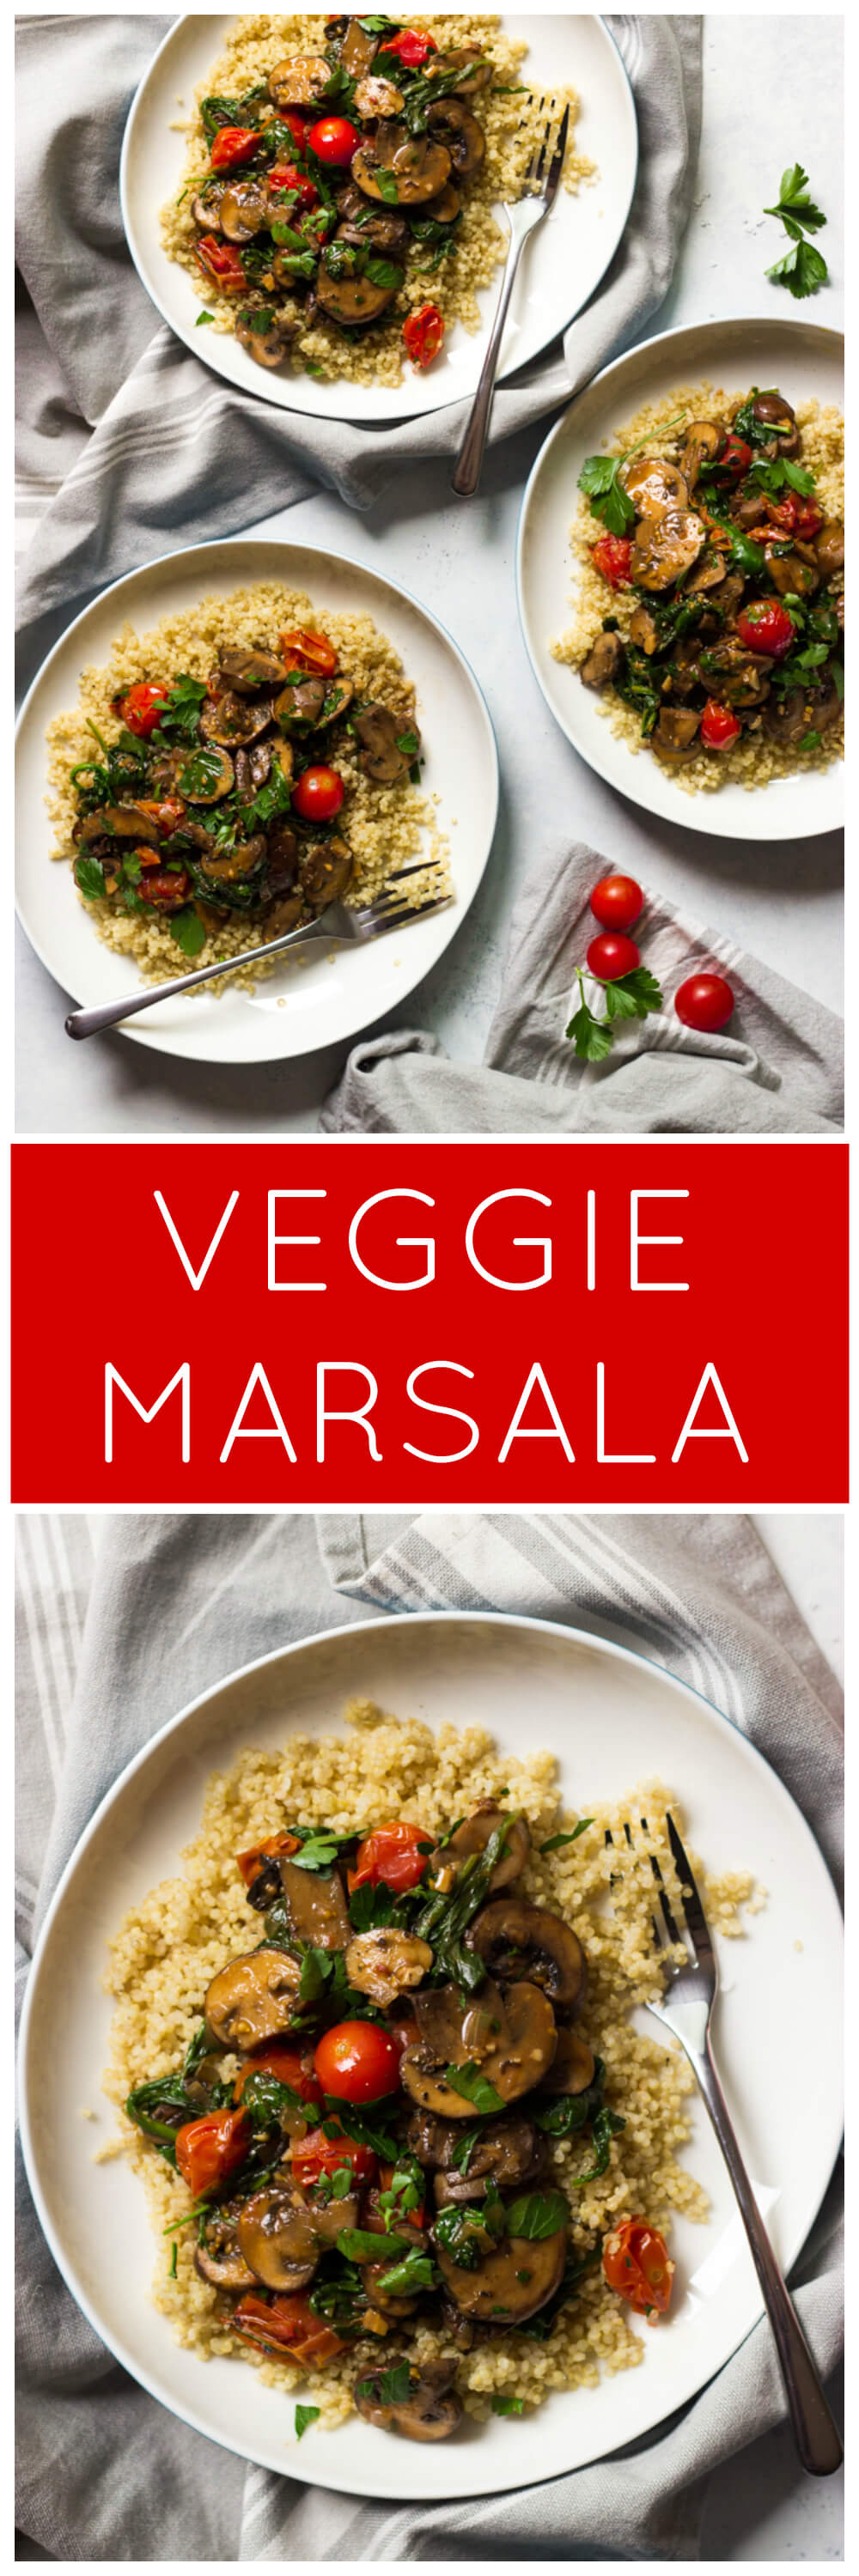 Veggie Marsala - easy meatless weeknight meal that is flavor packed thanks to Marsala wine, shallots, garlic, mushrooms, spinach, and tomatoes | littlebroken.com @littlebroken